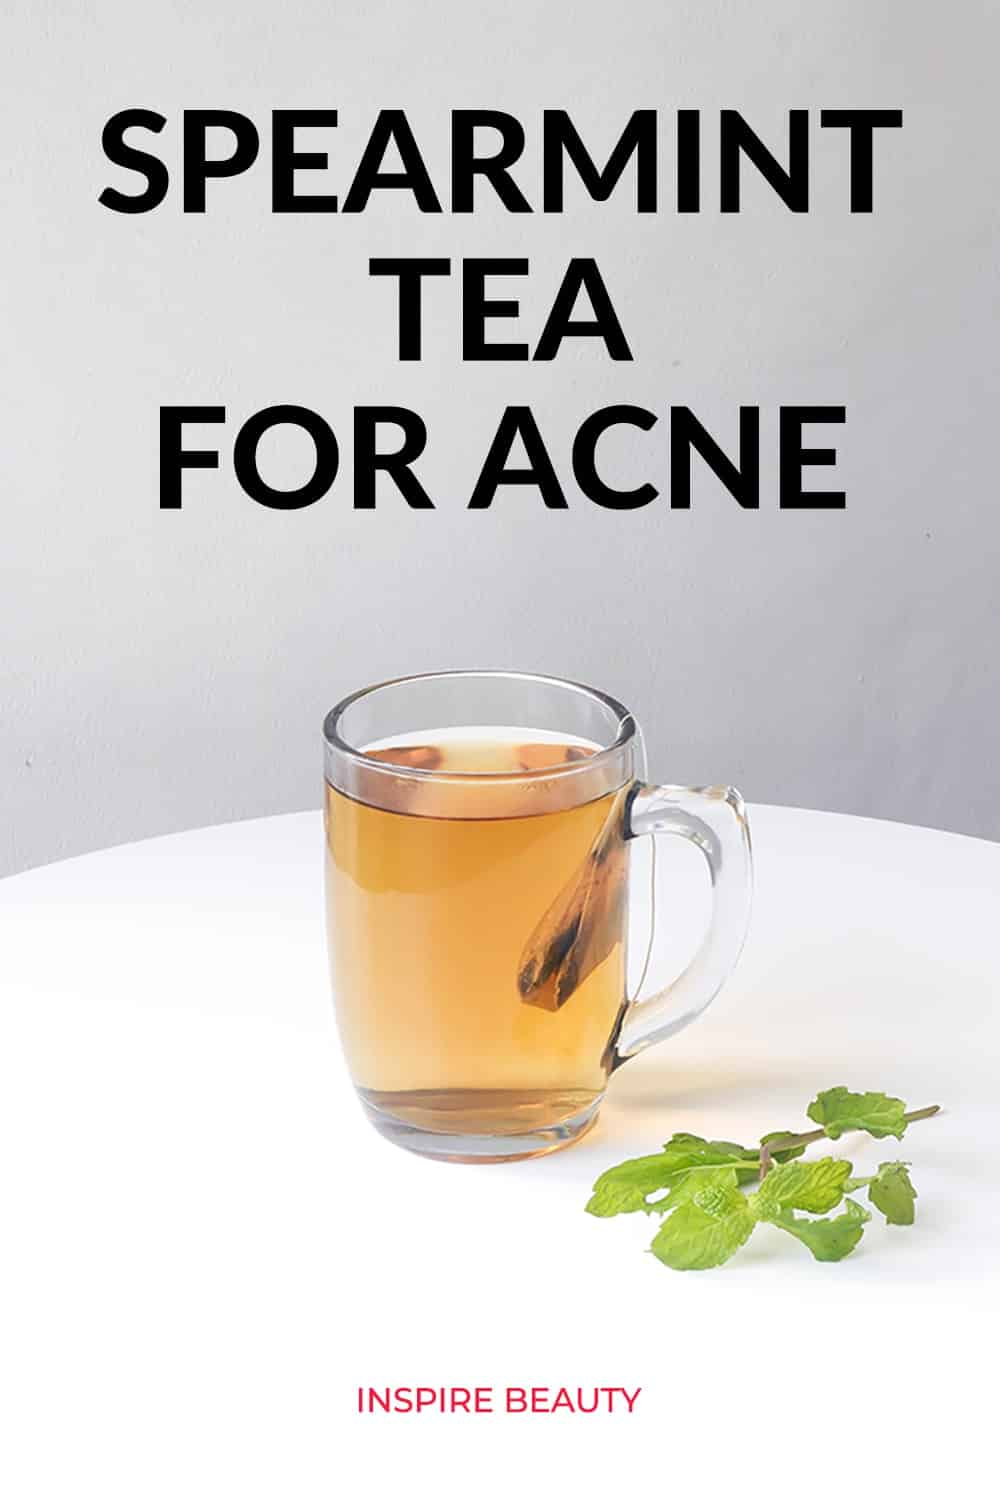 Studies show drinking spearmint tea has an anti-androgen effect helping to balance hormones in women with PCOS, can also help hirsutism and acne